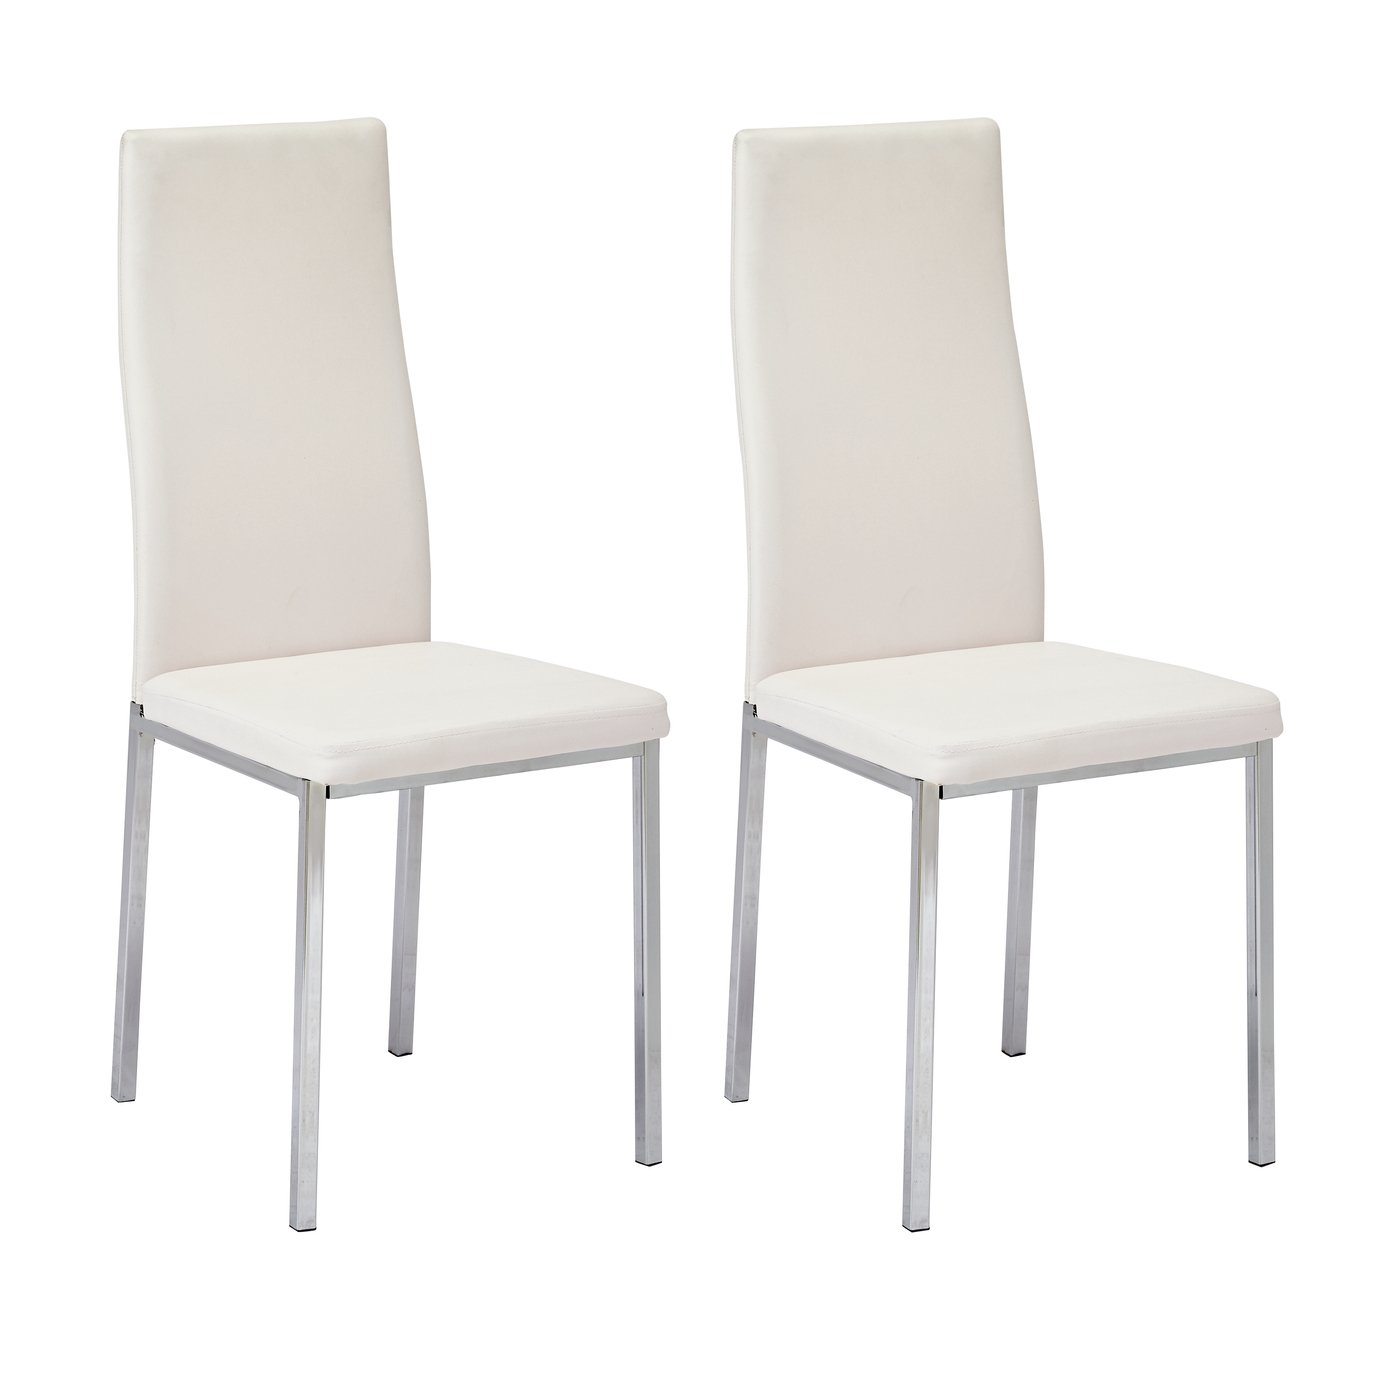 chair covers dunelm mill bloom fresco high dining chairs upholstered wooden argos home tia pair of chrome white